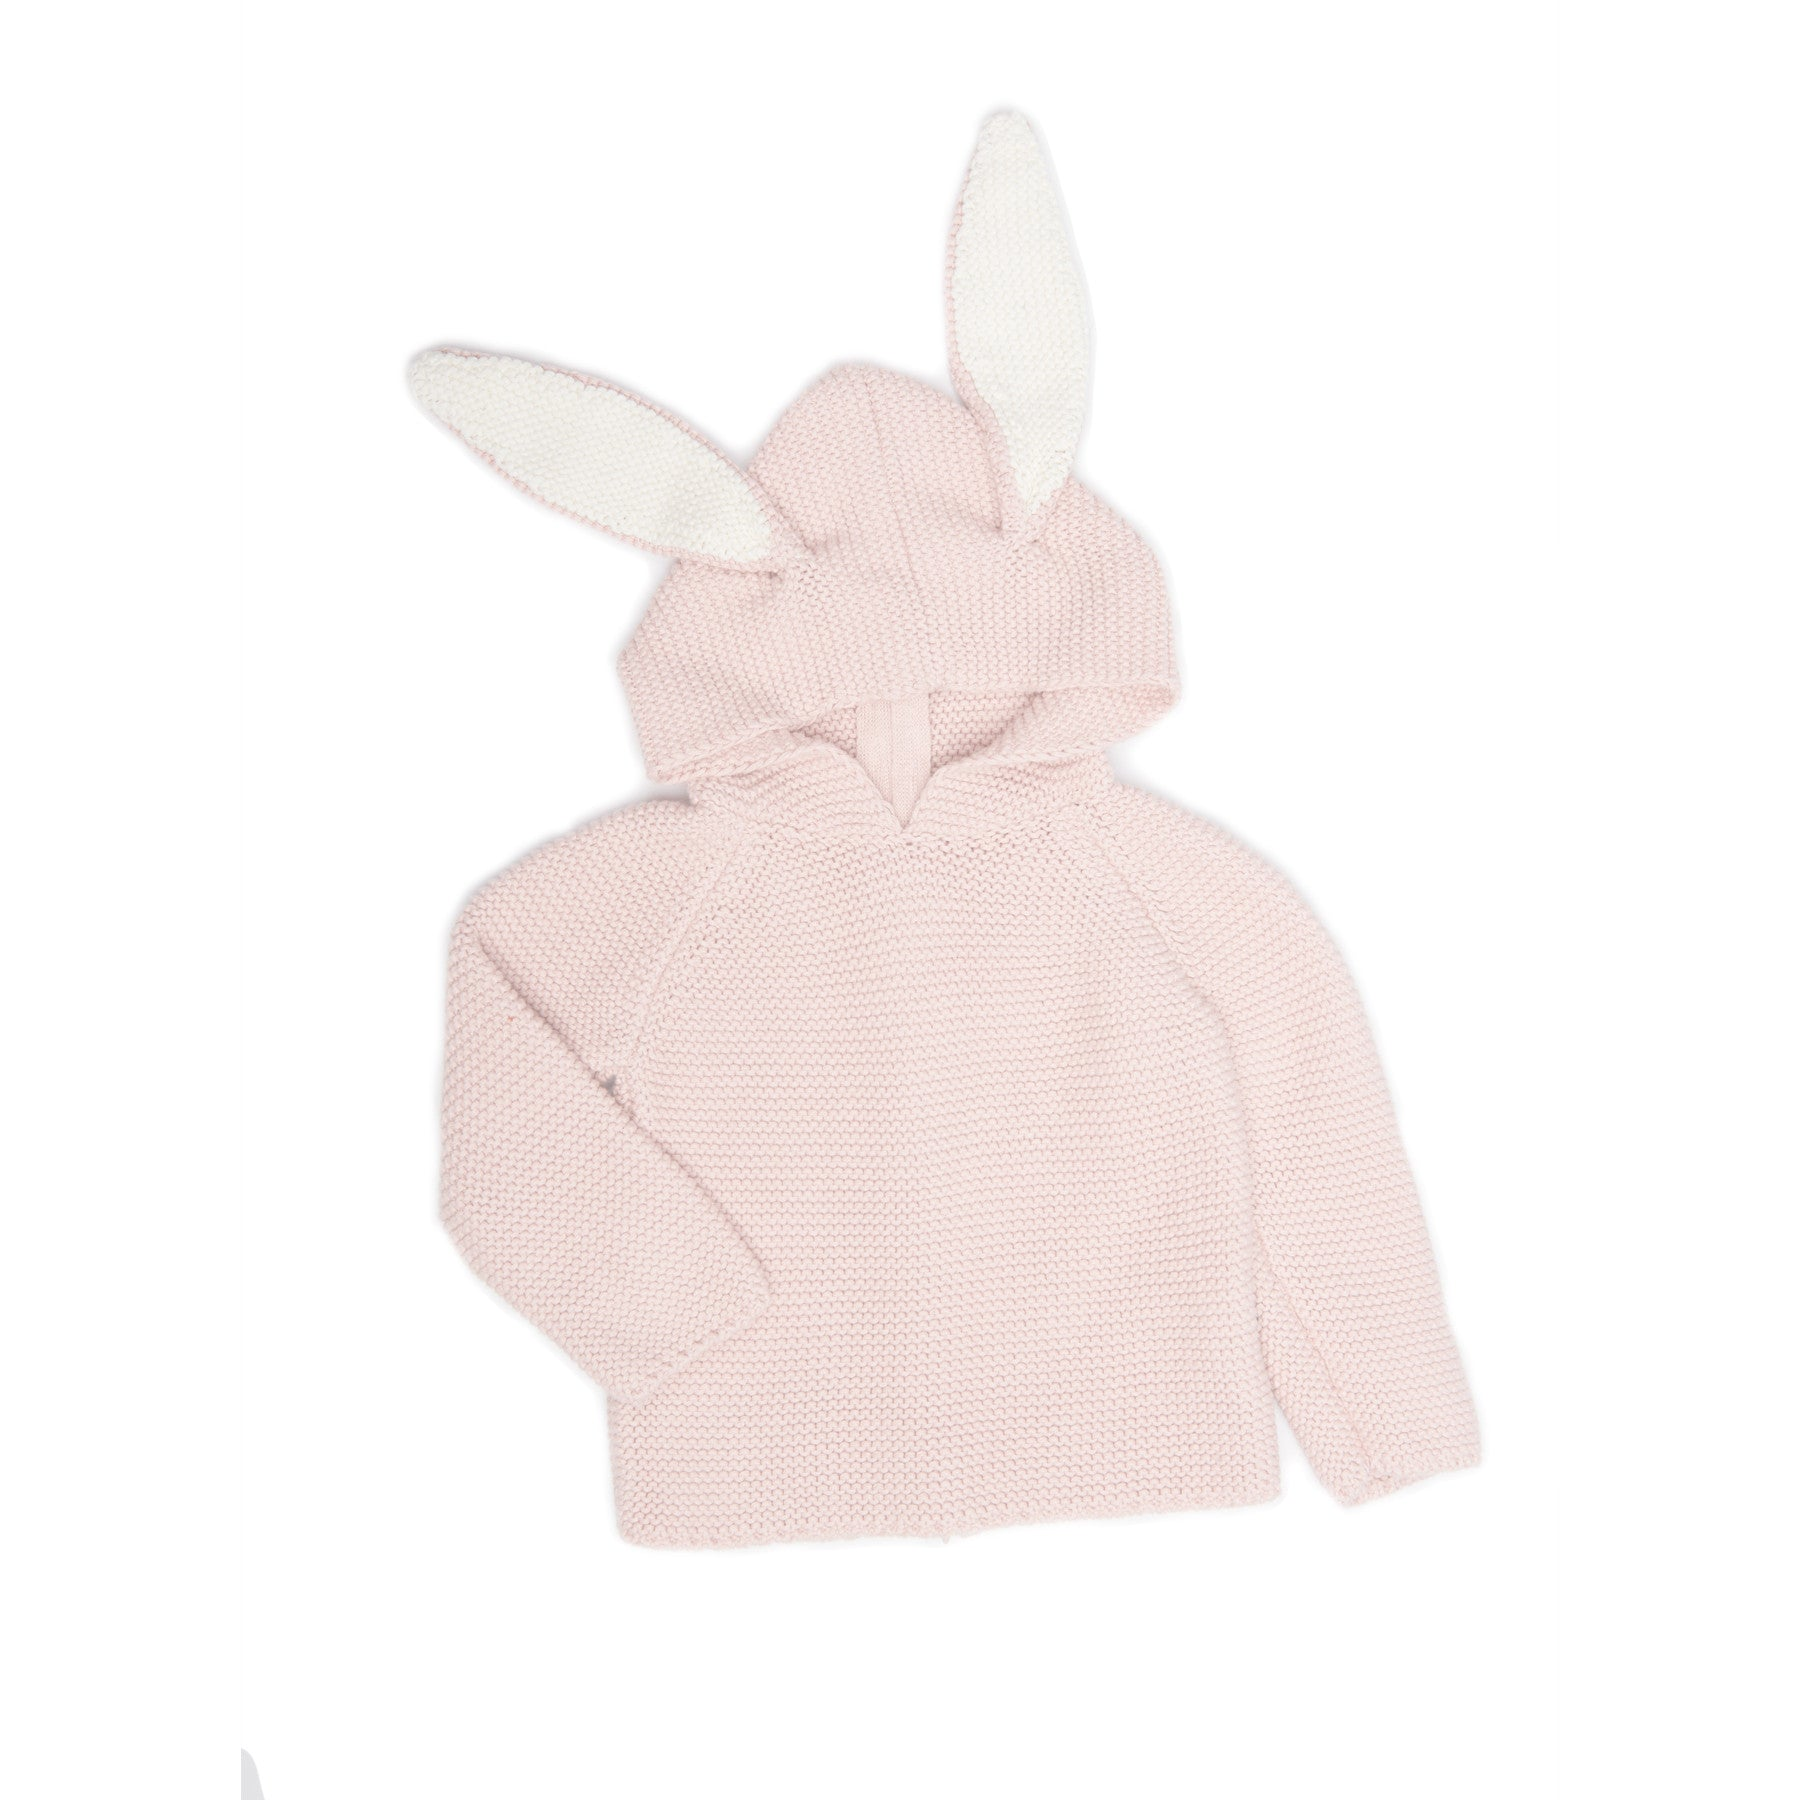 Knitted Bunny Sweater by Oeuf at Bonjour Baby Baskets - Luxury Baby Gifts